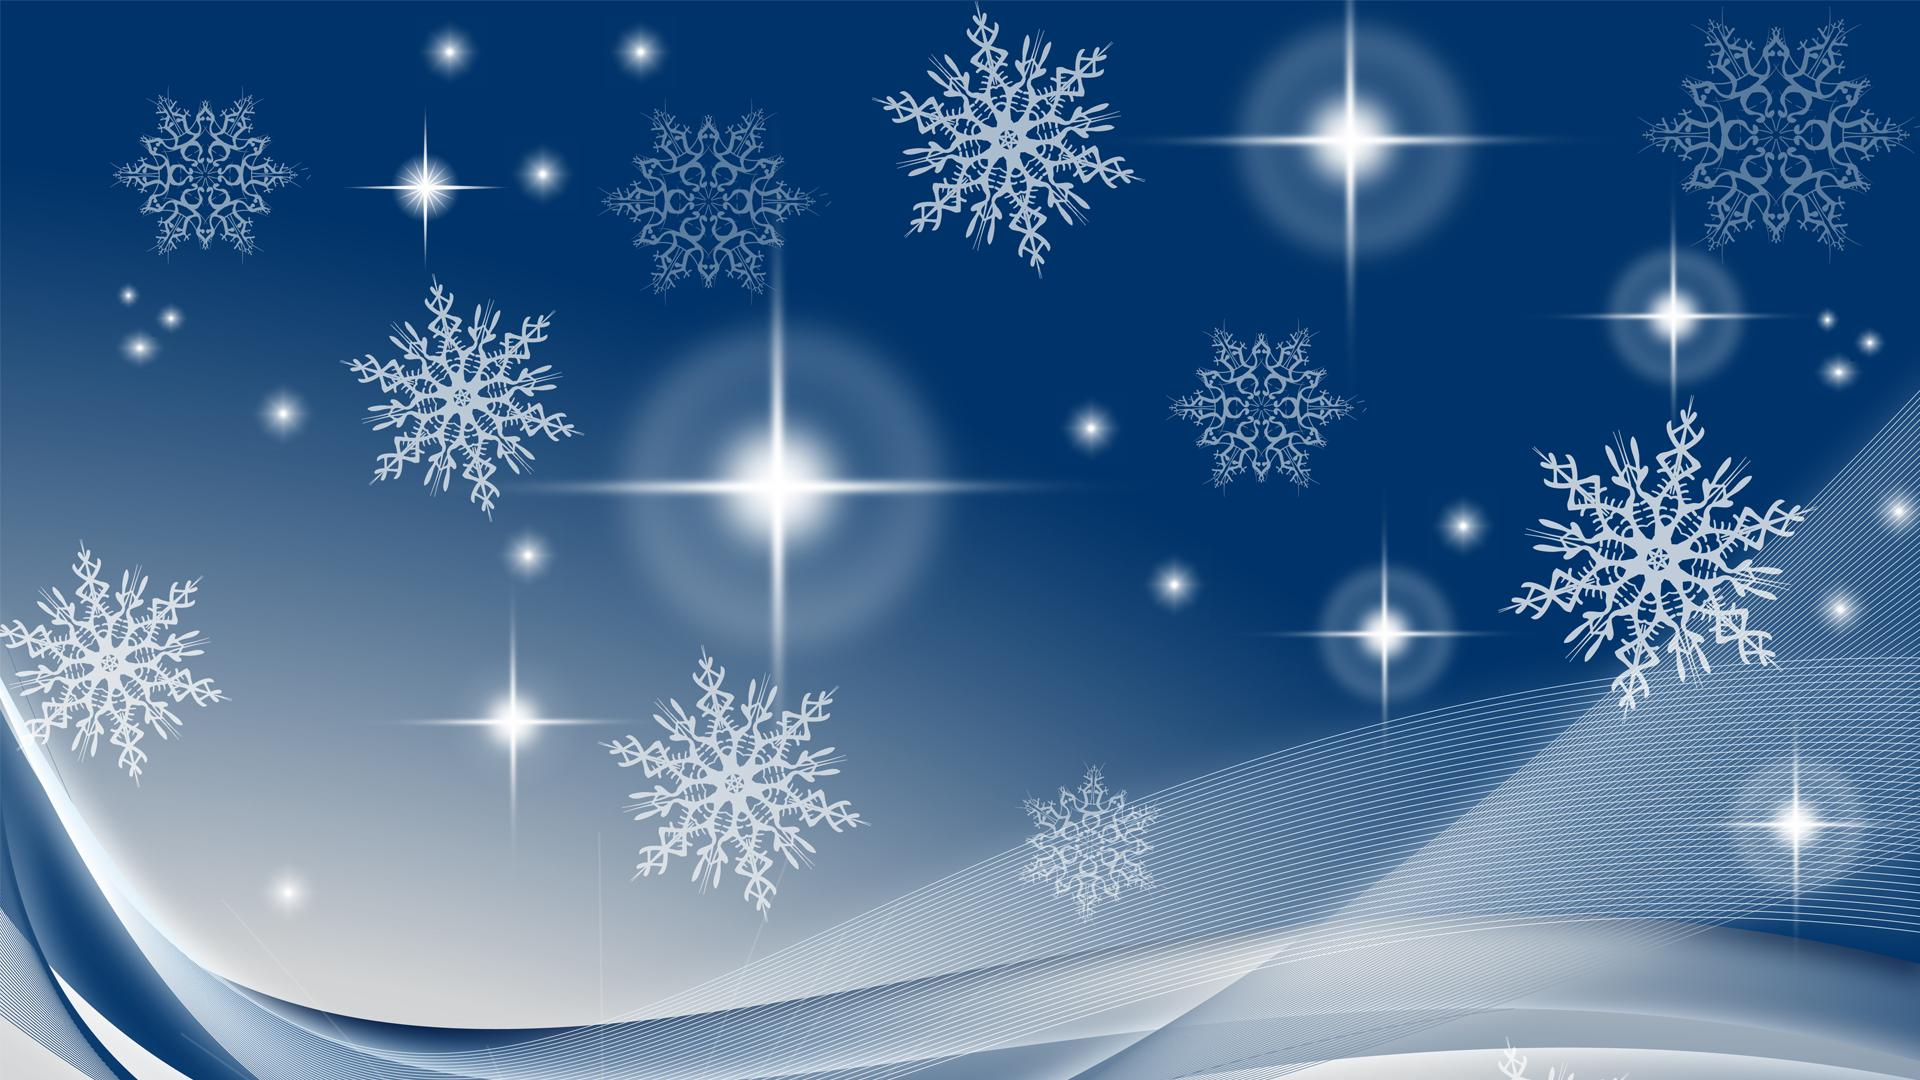 Snowflakes Wallpapers Group 1920x1080